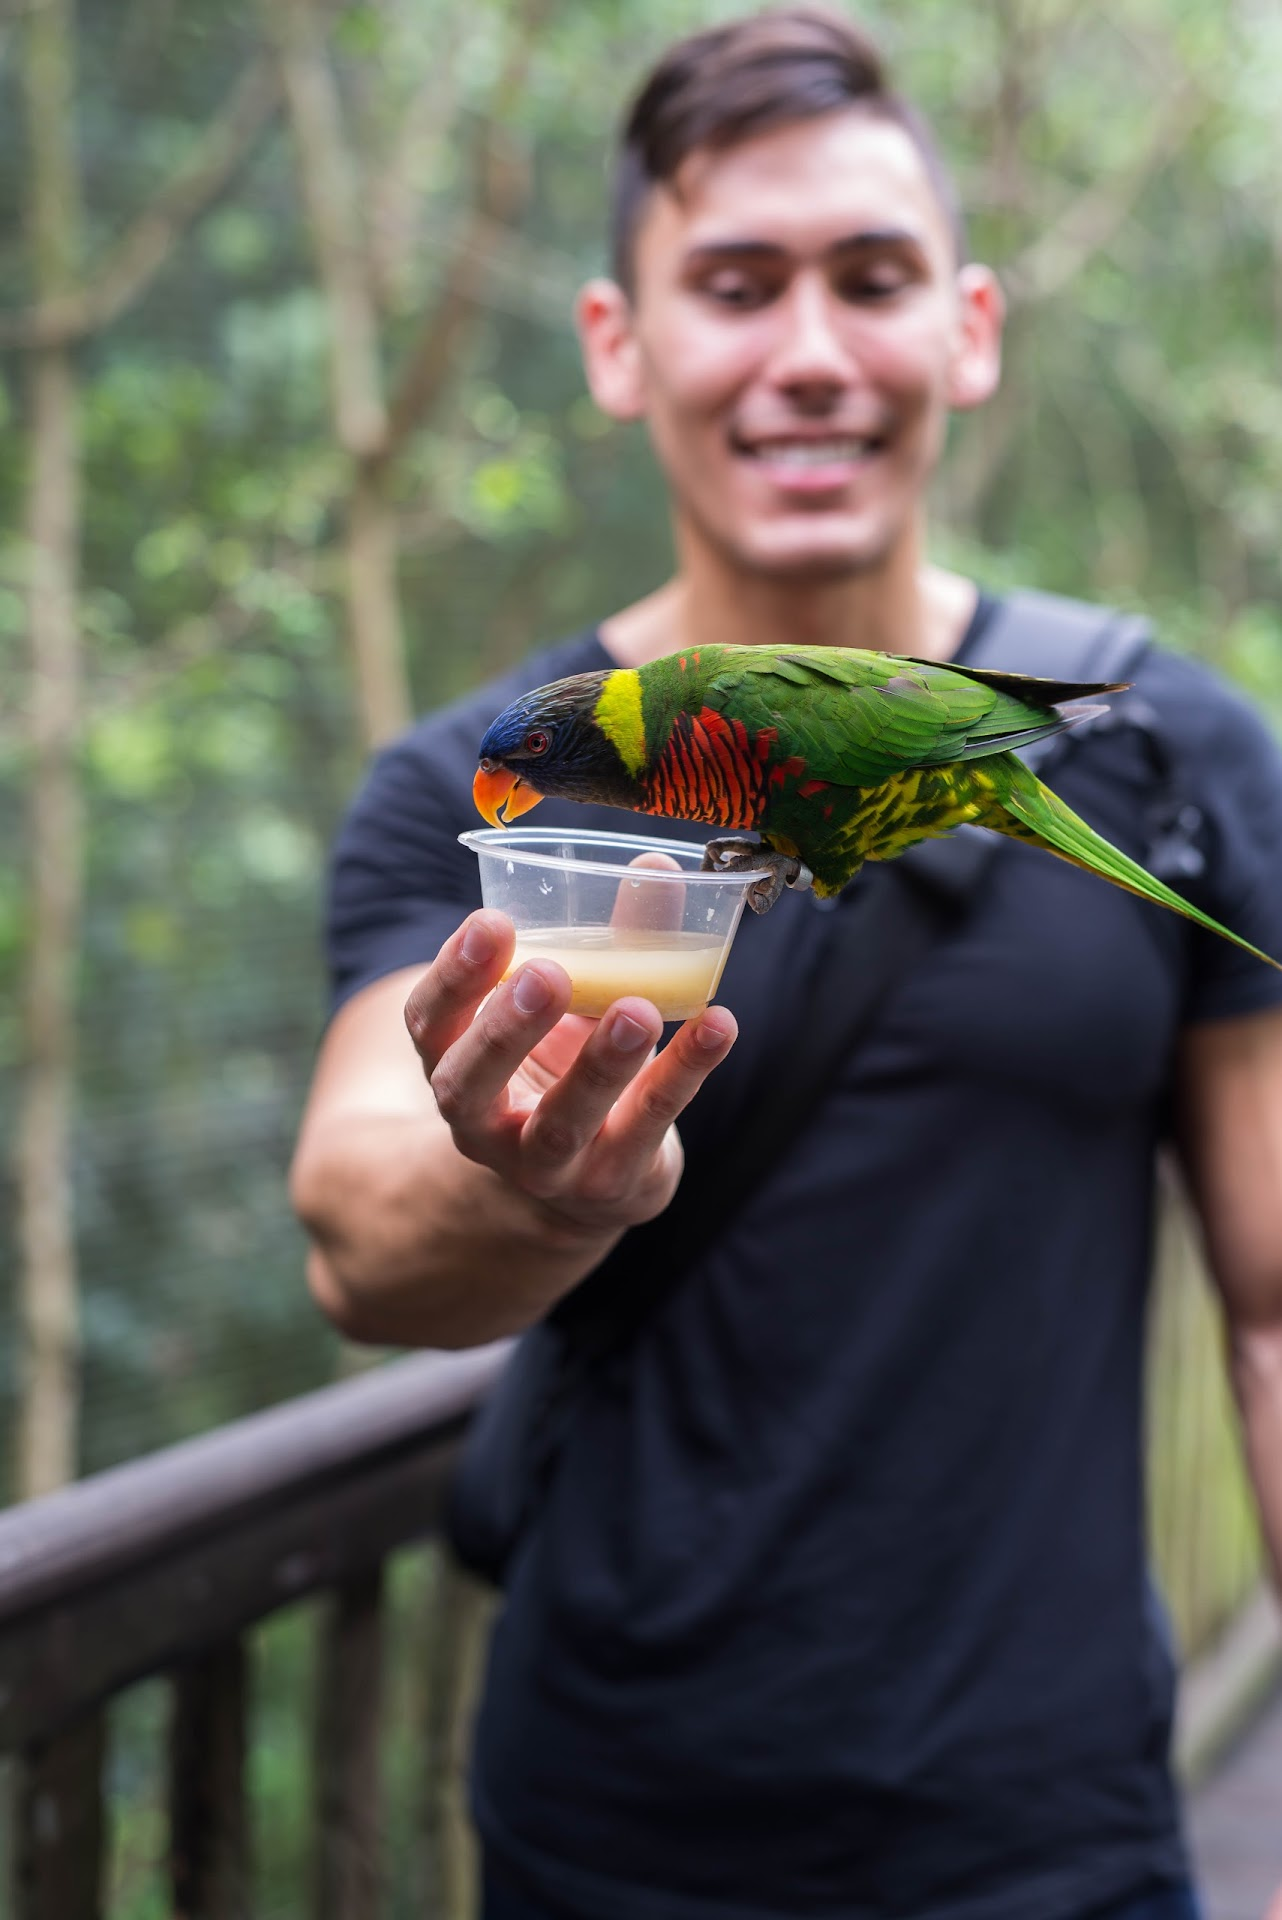 feeding birds, animals, zoo, animal park, jurong bird park, singapore guide, things to do, best, travel blogger, sf bay area, mormon lds